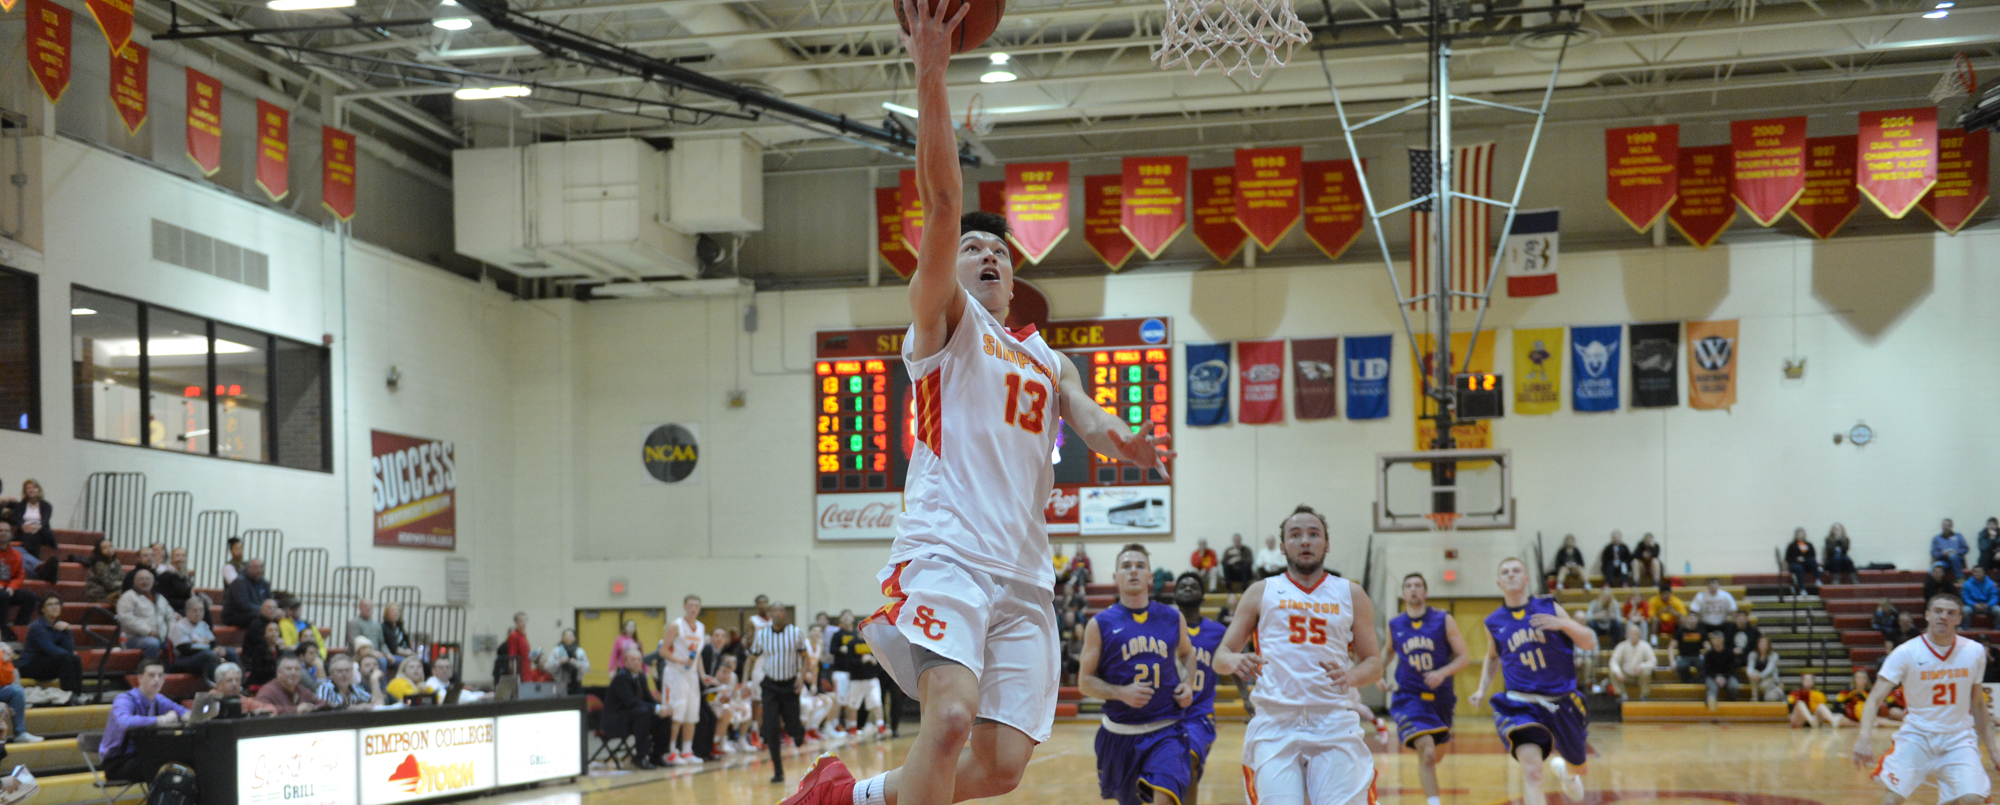 Ben Rajewski scored 11 points off the bench in the Storm's 101-95 win over Loras on Jan. 25.